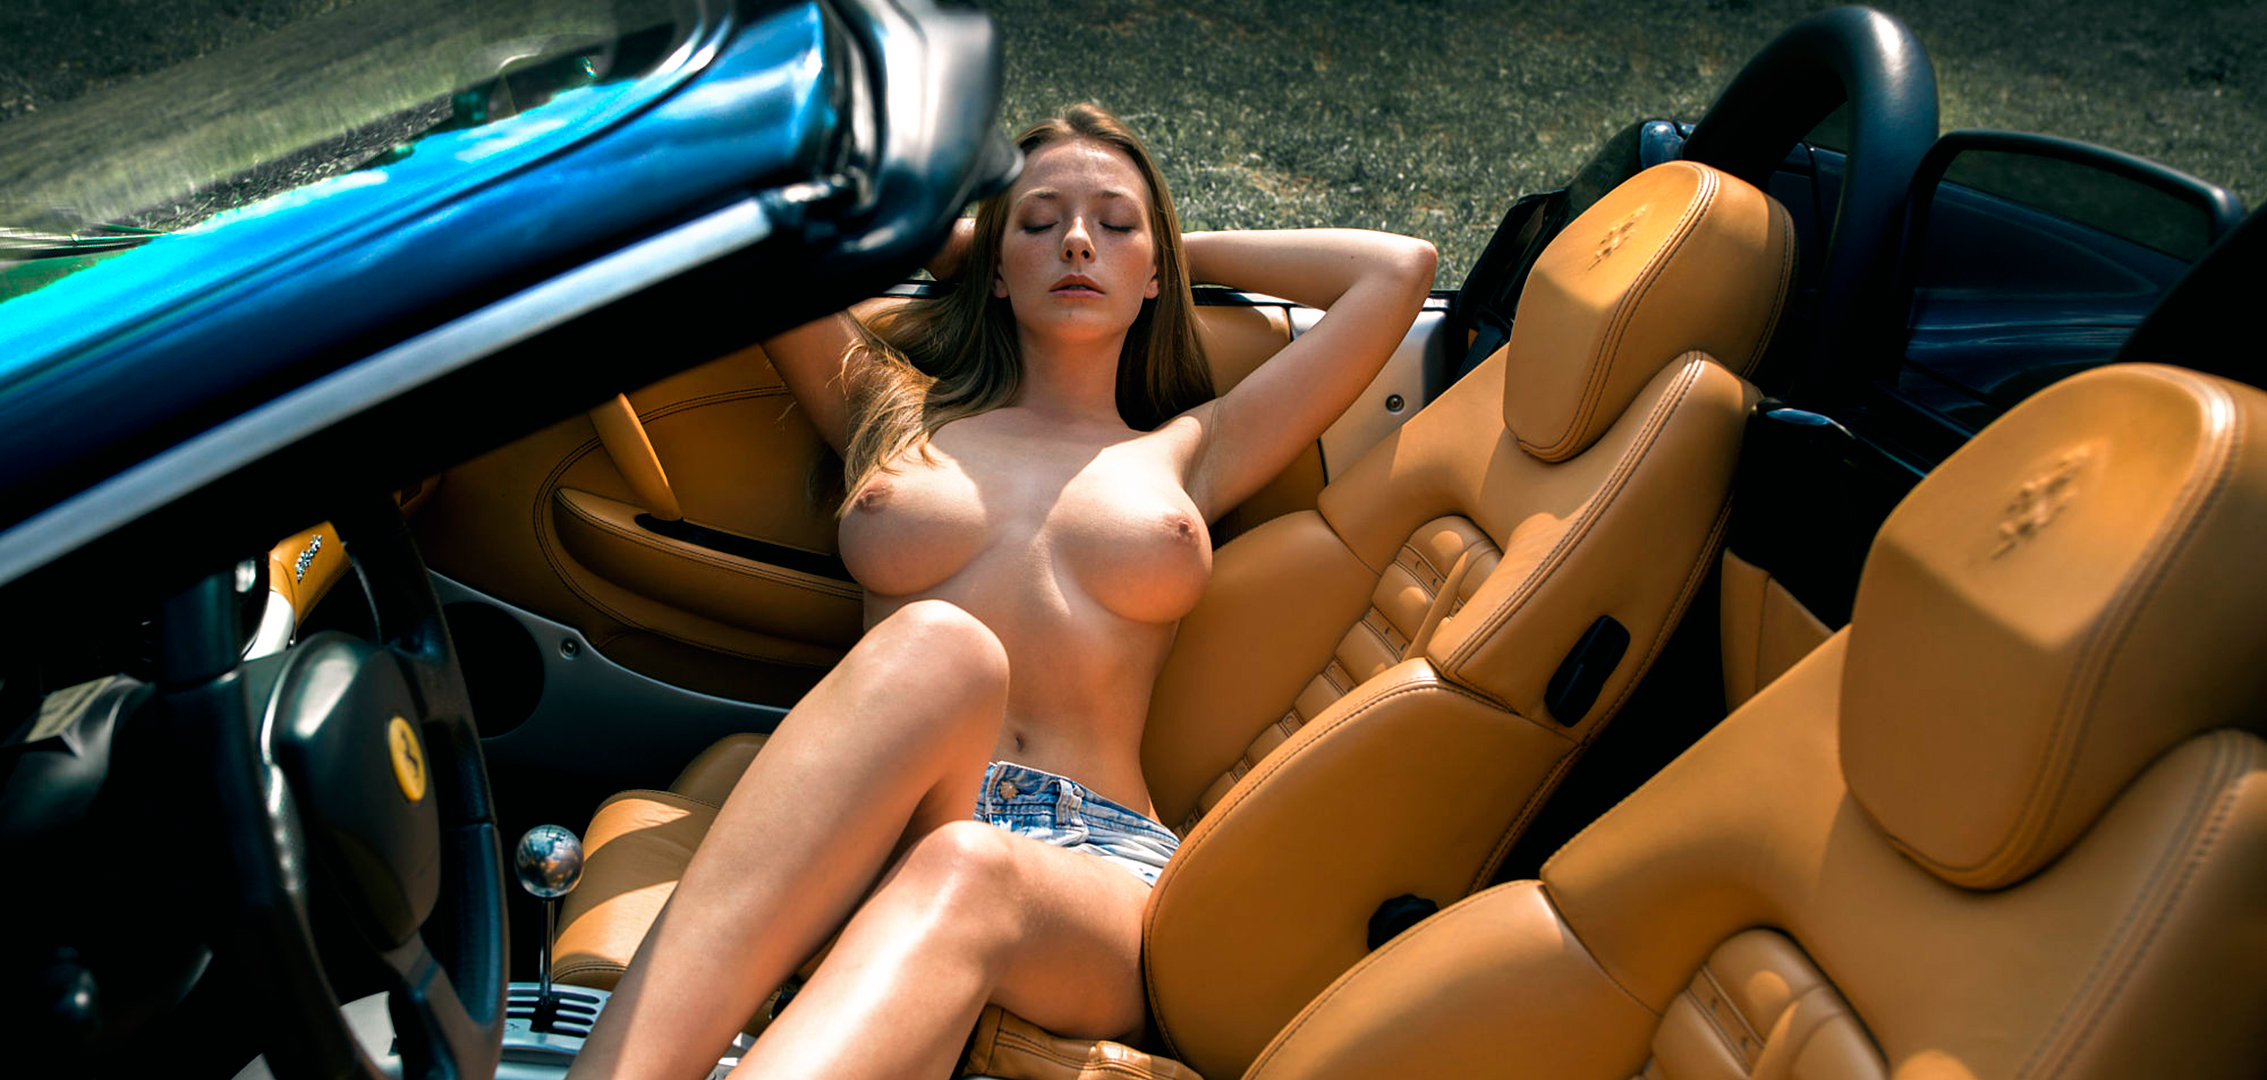 Young girl sext girls and hot cars